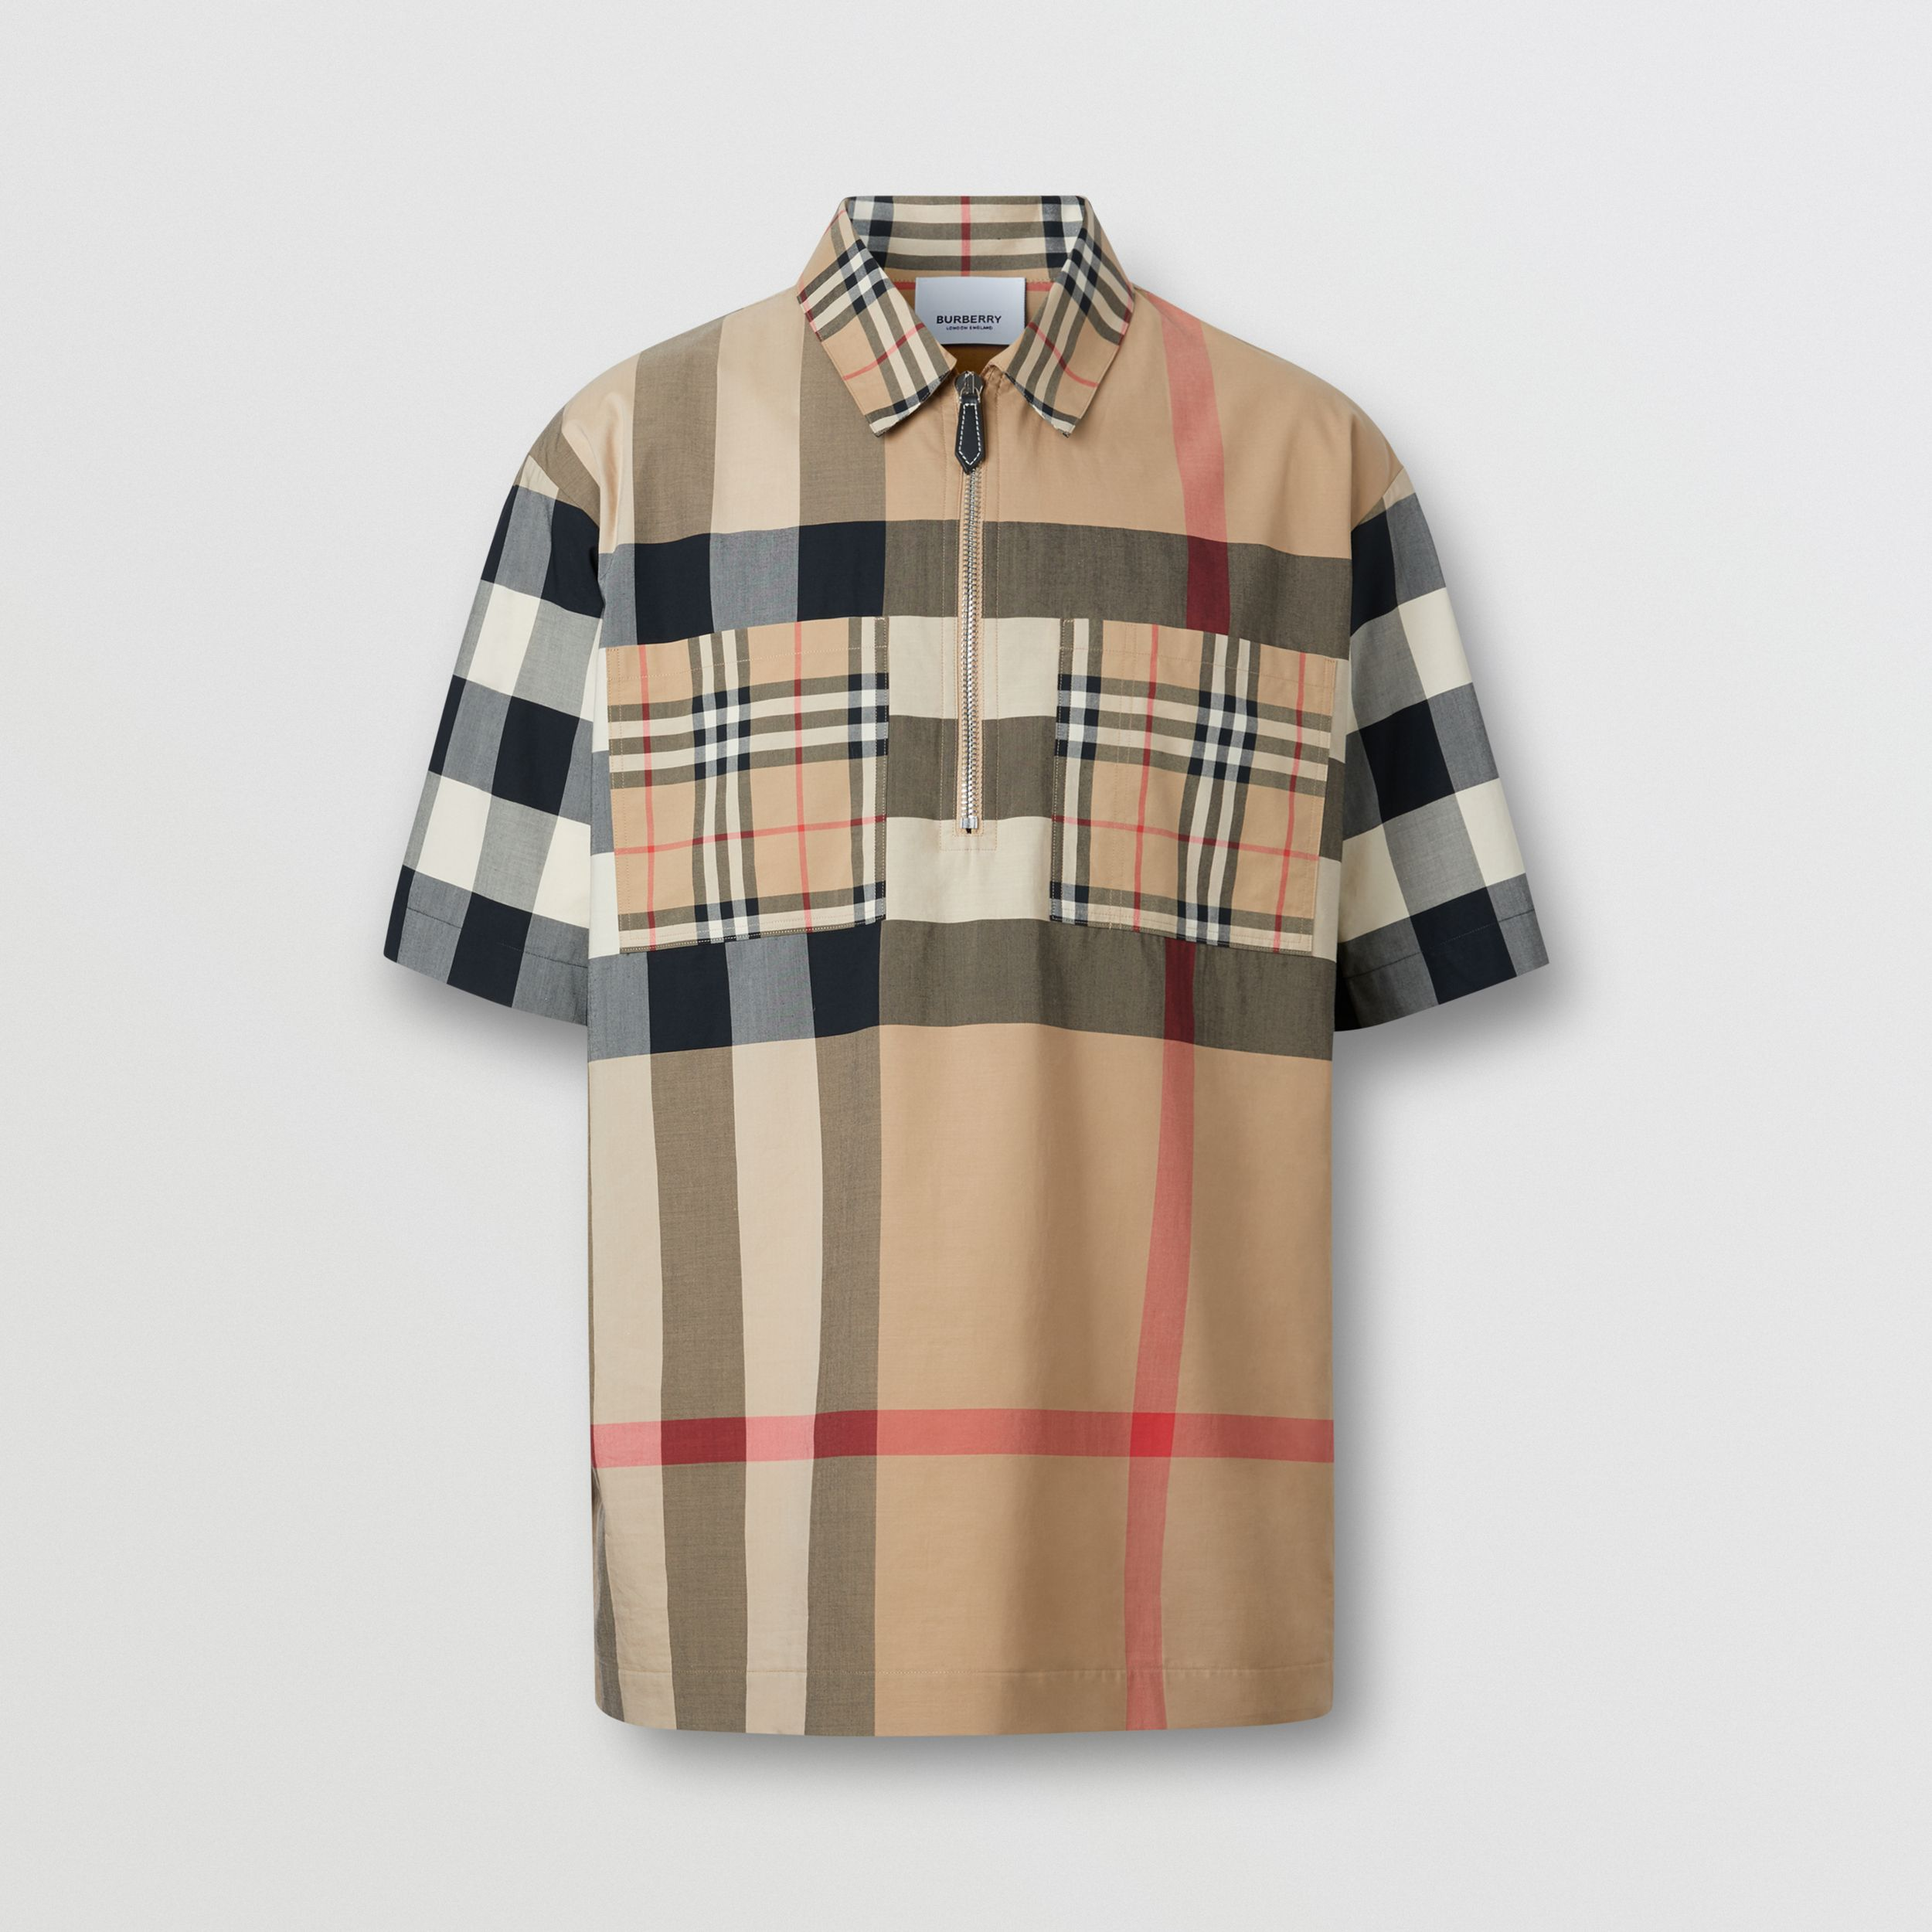 Short-sleeve Panelled Check Stretch Cotton Shirt in Archive Beige - Men | Burberry - 4